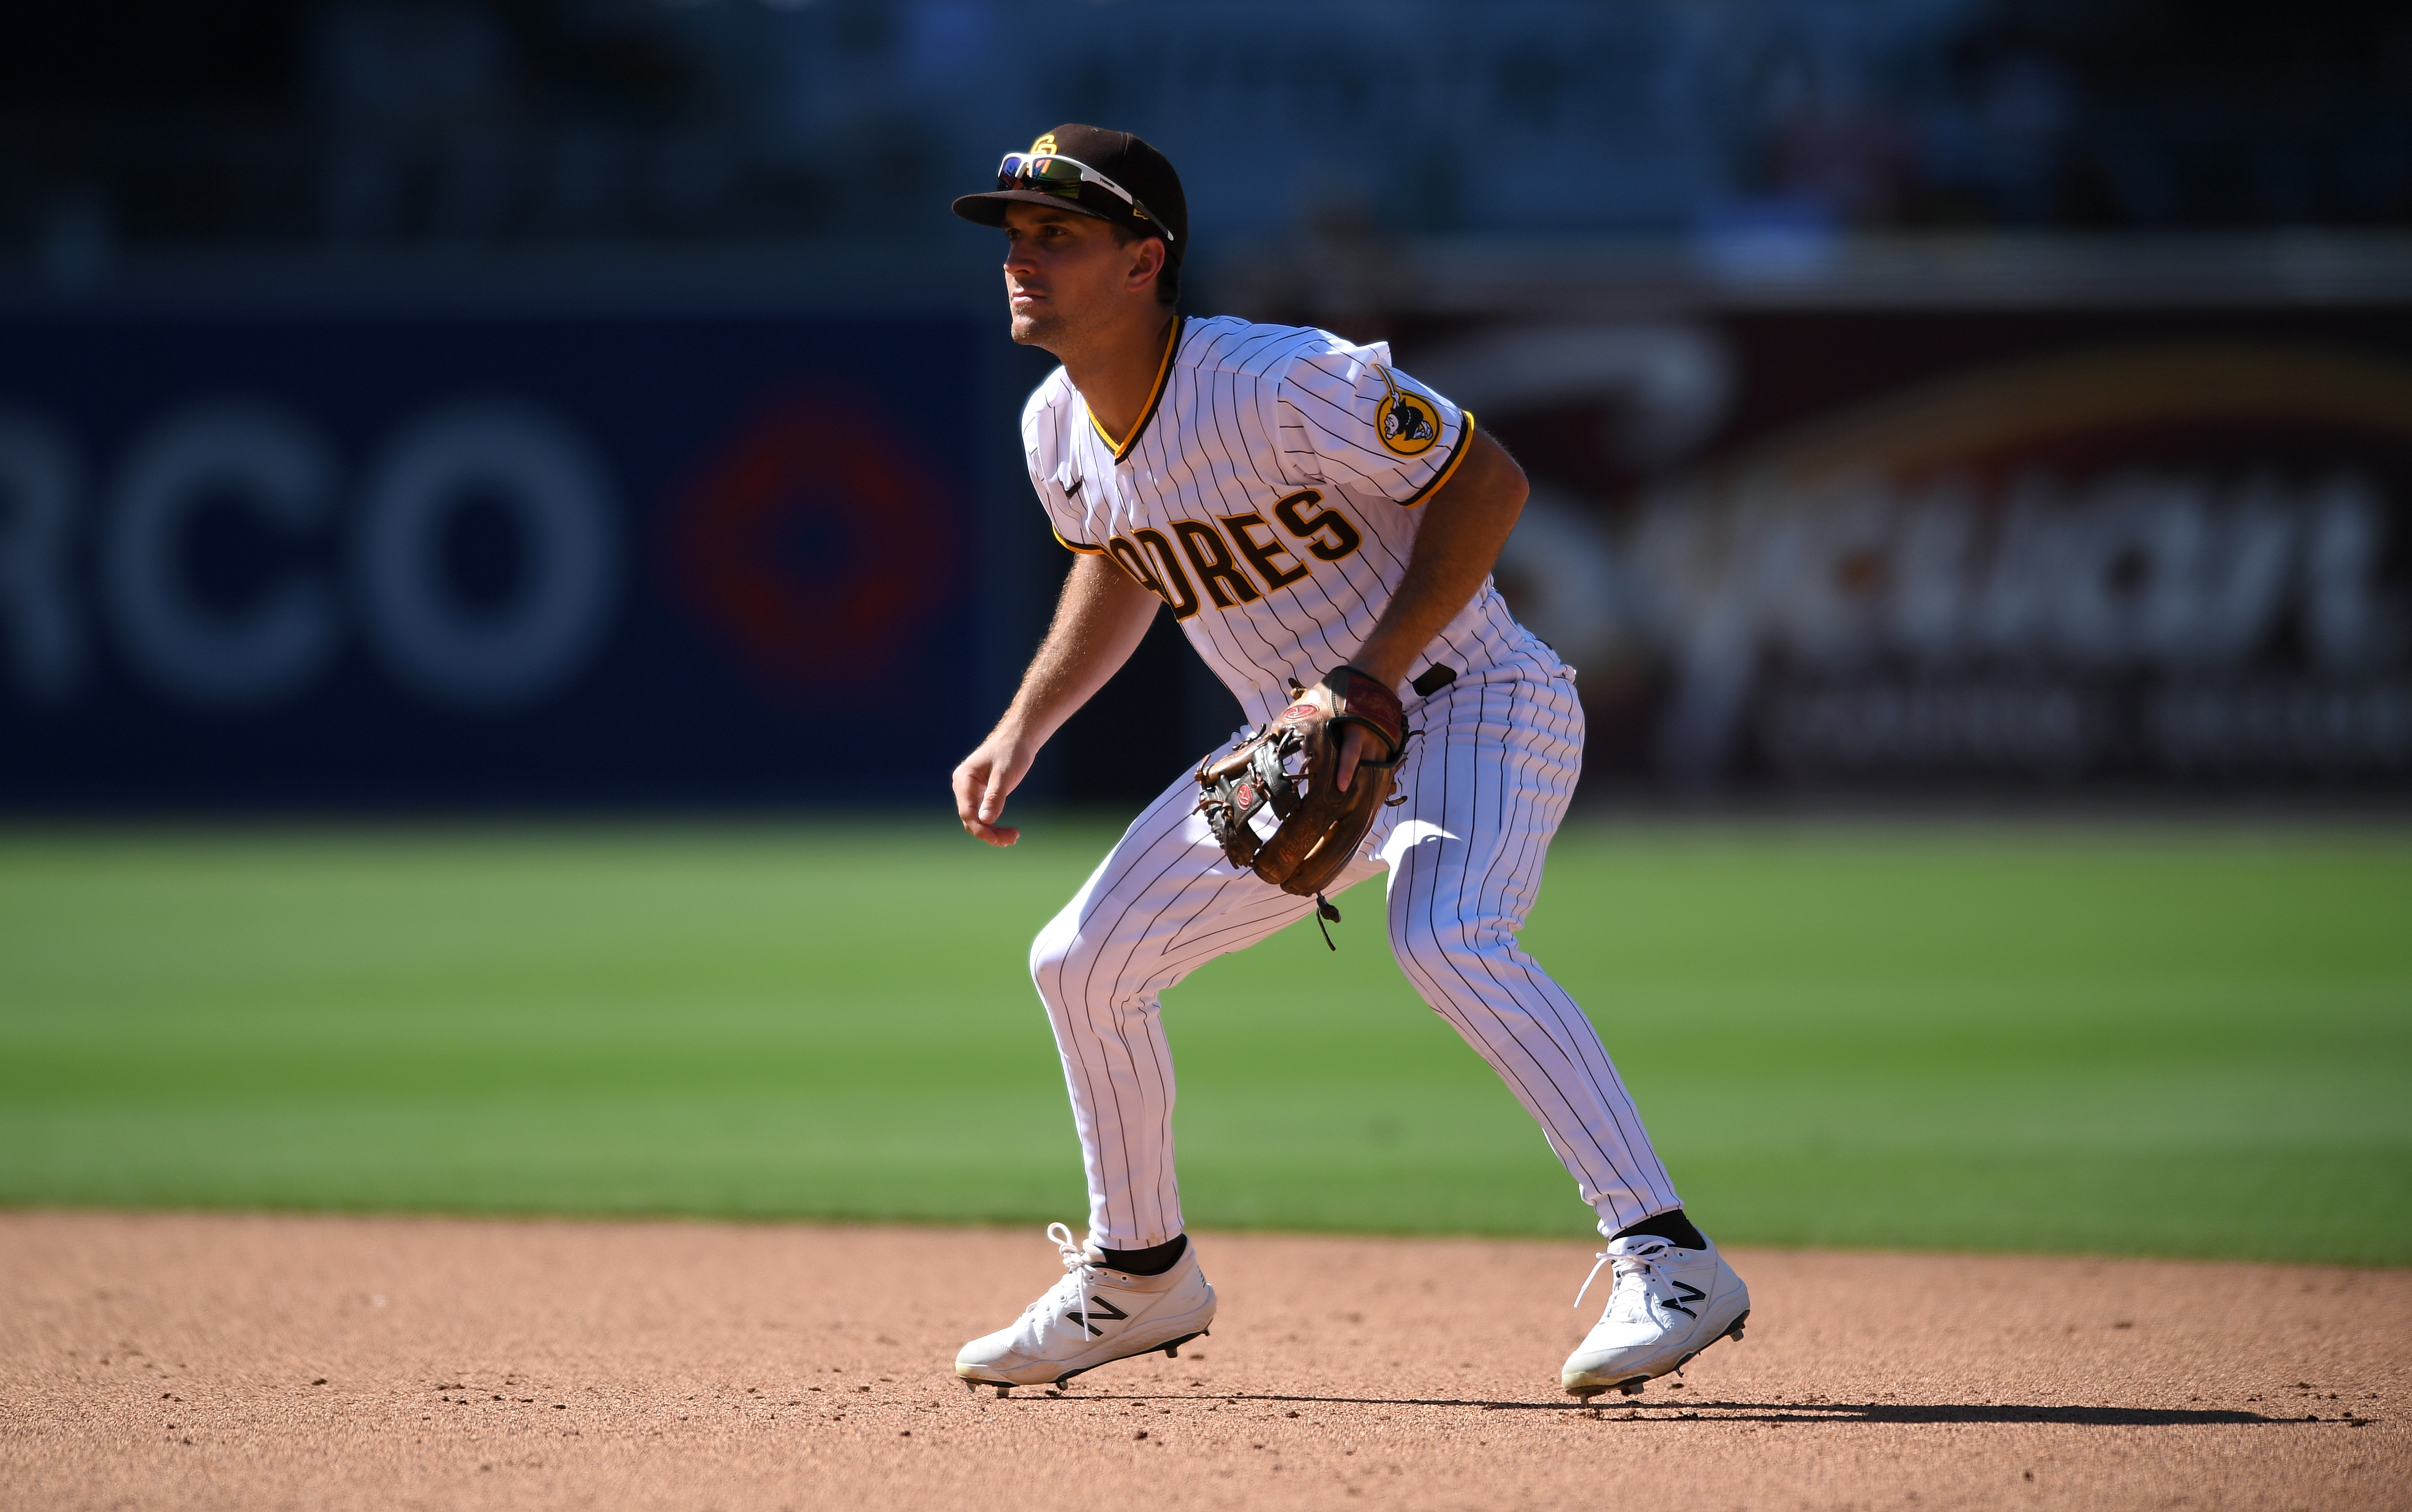 San Diego Padres vs Oakland Athletics Prediction, 8/3/2021 MLB Pick, Tips and Odds